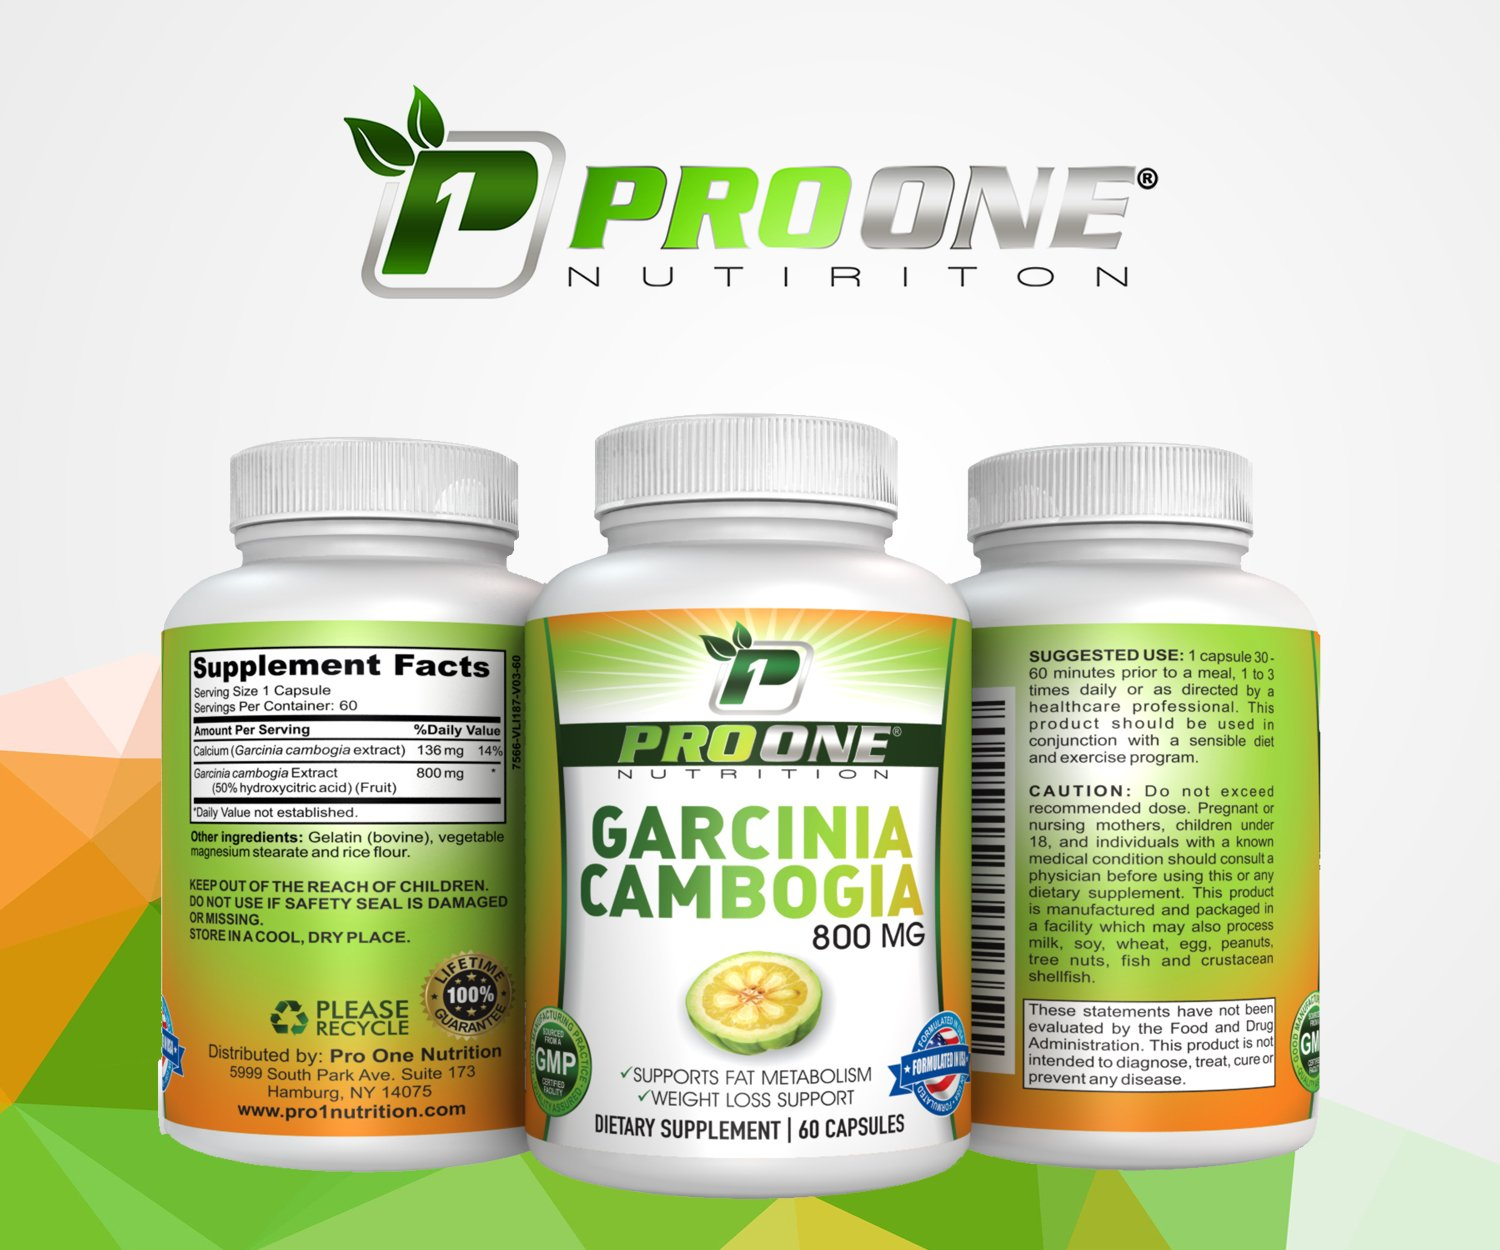 Pure Garcinia Cambogia 800MG by ProOne Nutrition. Add Garcinia to lose weight quickly and fast to diet, Increase Energy, improve Cholesterol, Stabilize Blood Sugar Levels and have a More Positive Mood by Pro One Nutrition